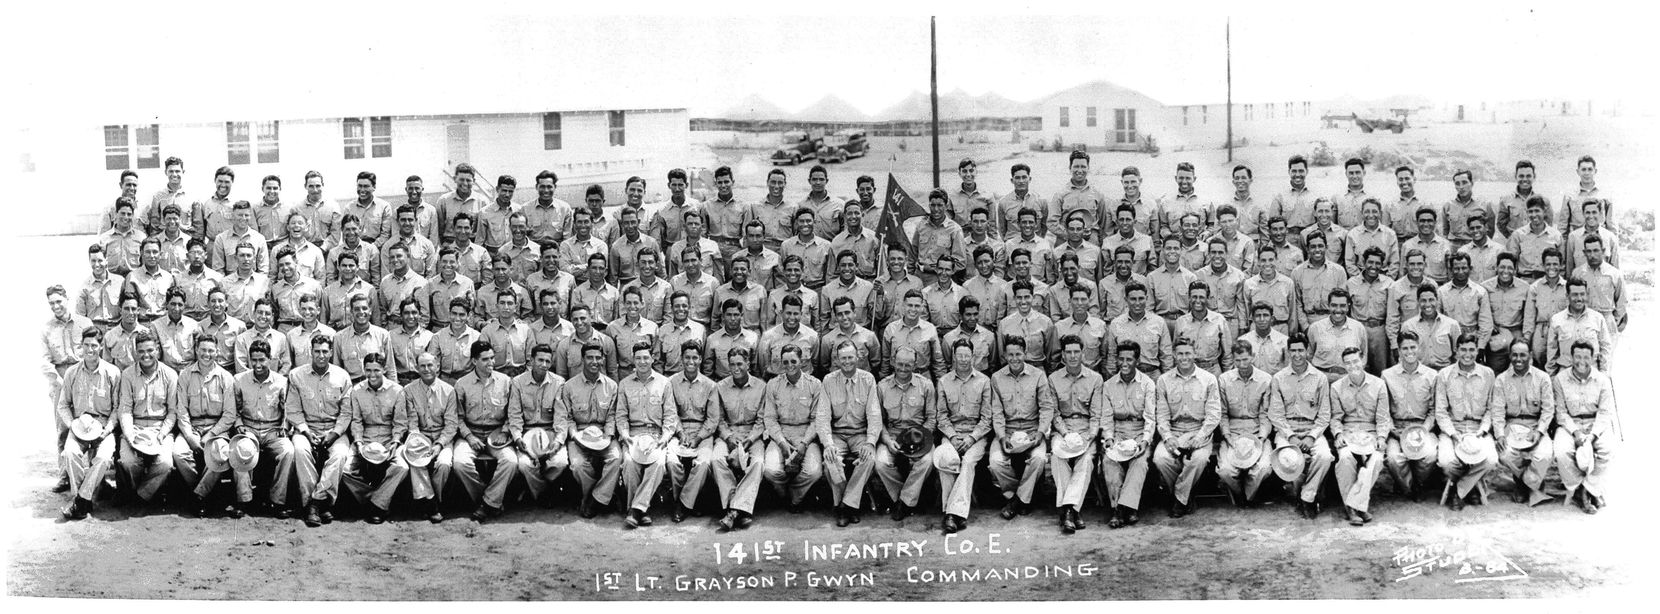 The all Mexican-American Company E of the 141st U.S. Army Infantry, 2nd Battalion, 36th Division, is pictured at Camp Bowie, near Brownwood, Texas in 1941.